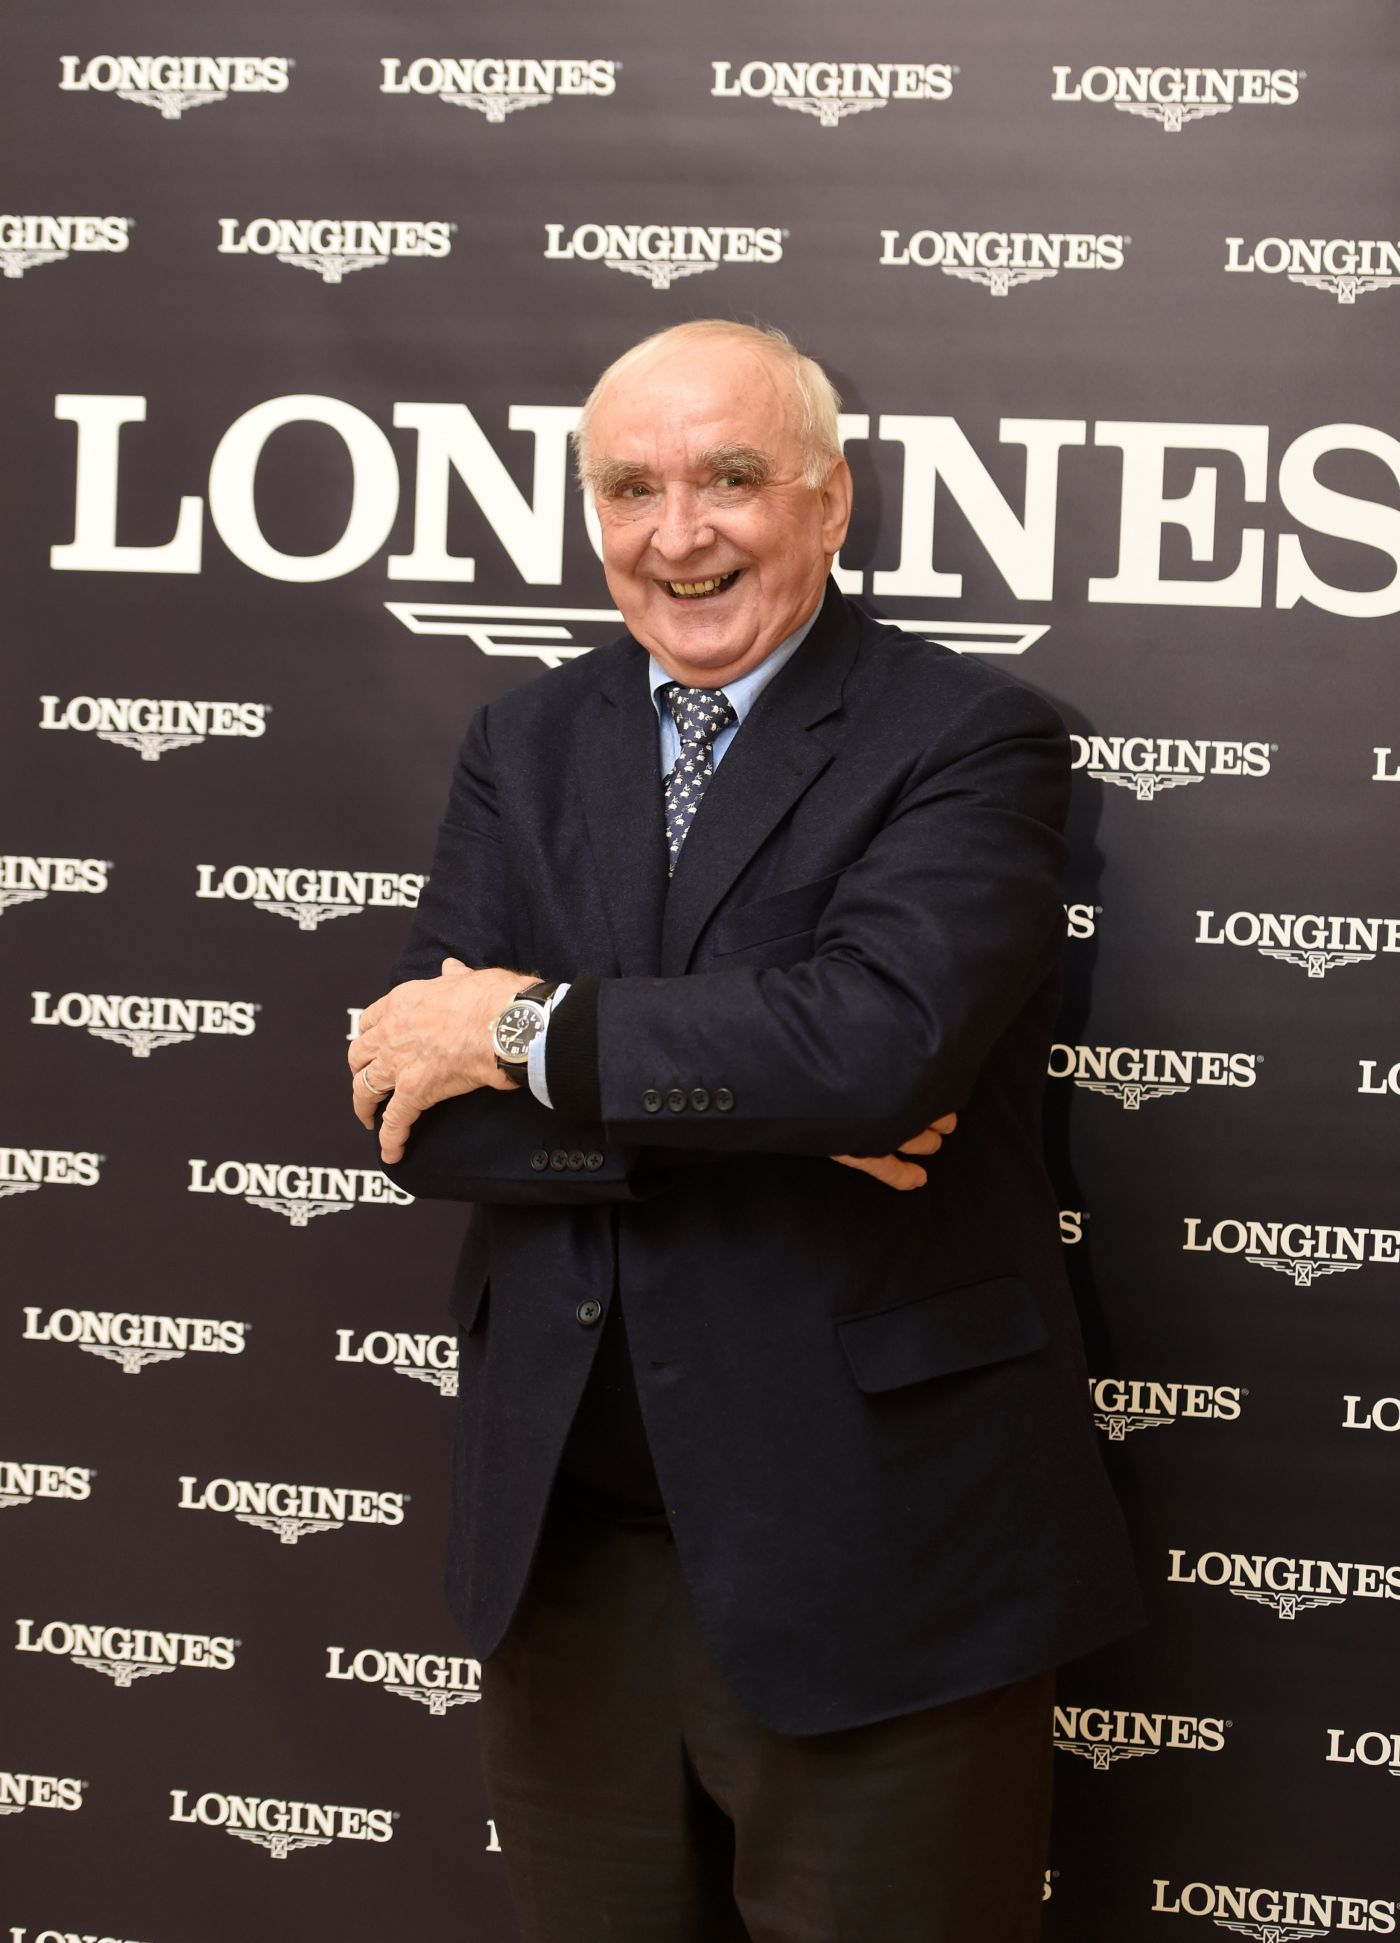 Longines Alpine Skiing Event: Longines pushes the limits of timekeeping in alpine skiing  2